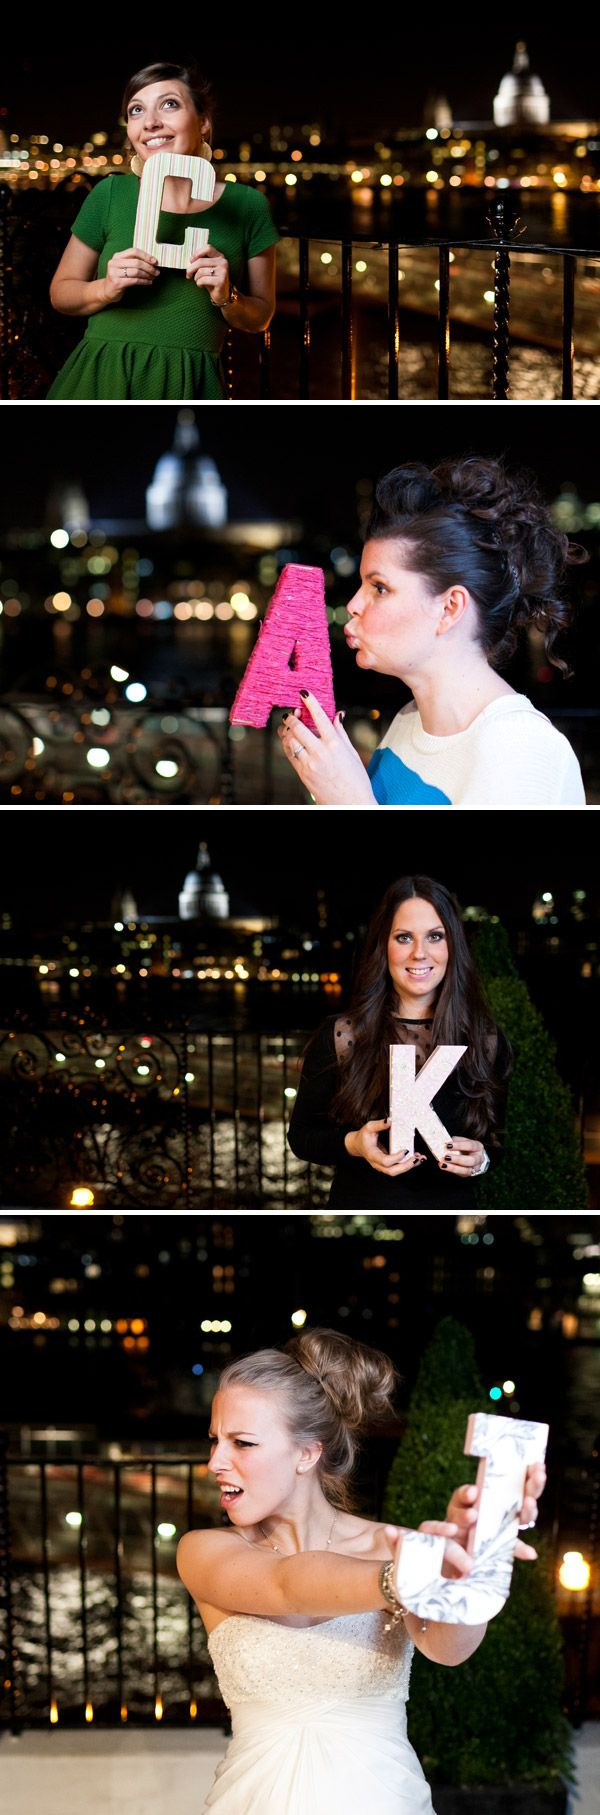 A crafty Hens Night idea. Start the night with DIY initial decorating. Then take those letters into town. Or not :)